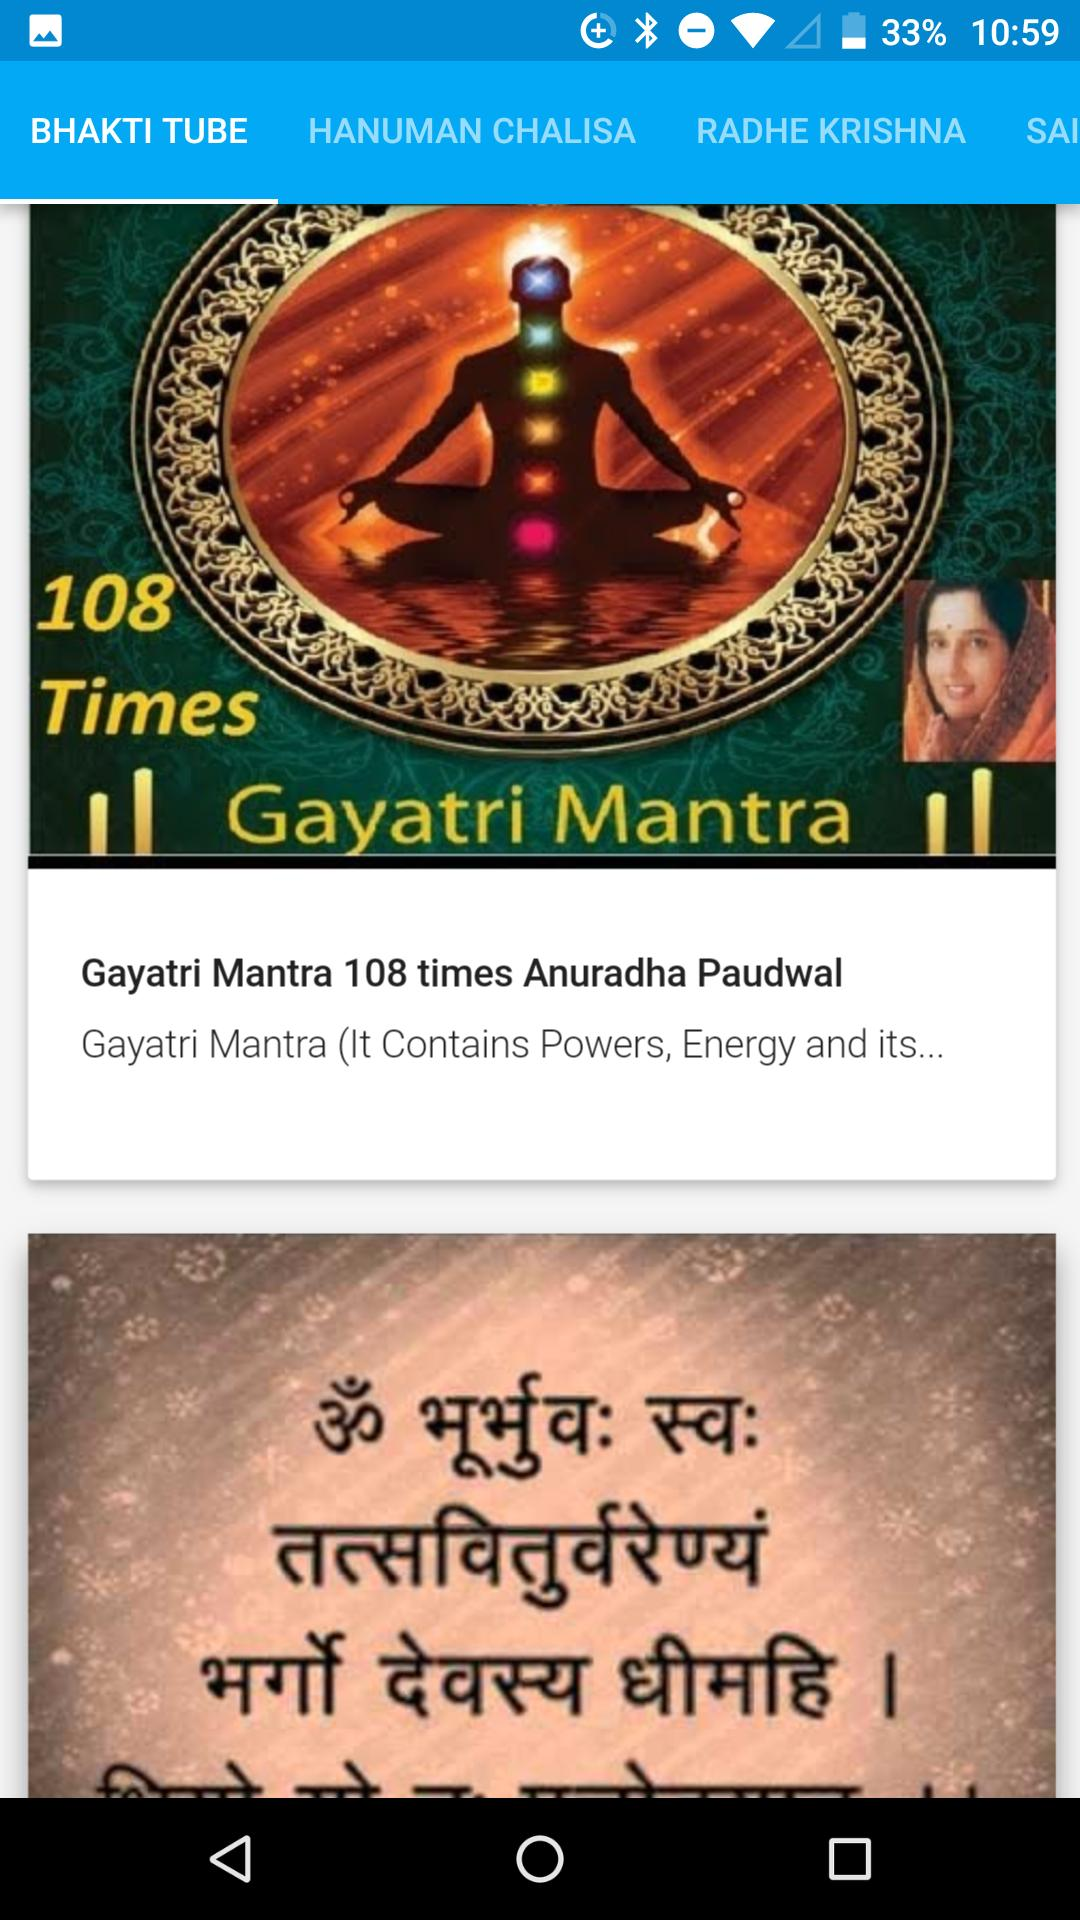 Bhakti Tube: 2500+ Superhit HD Bhajans for Android - APK Download